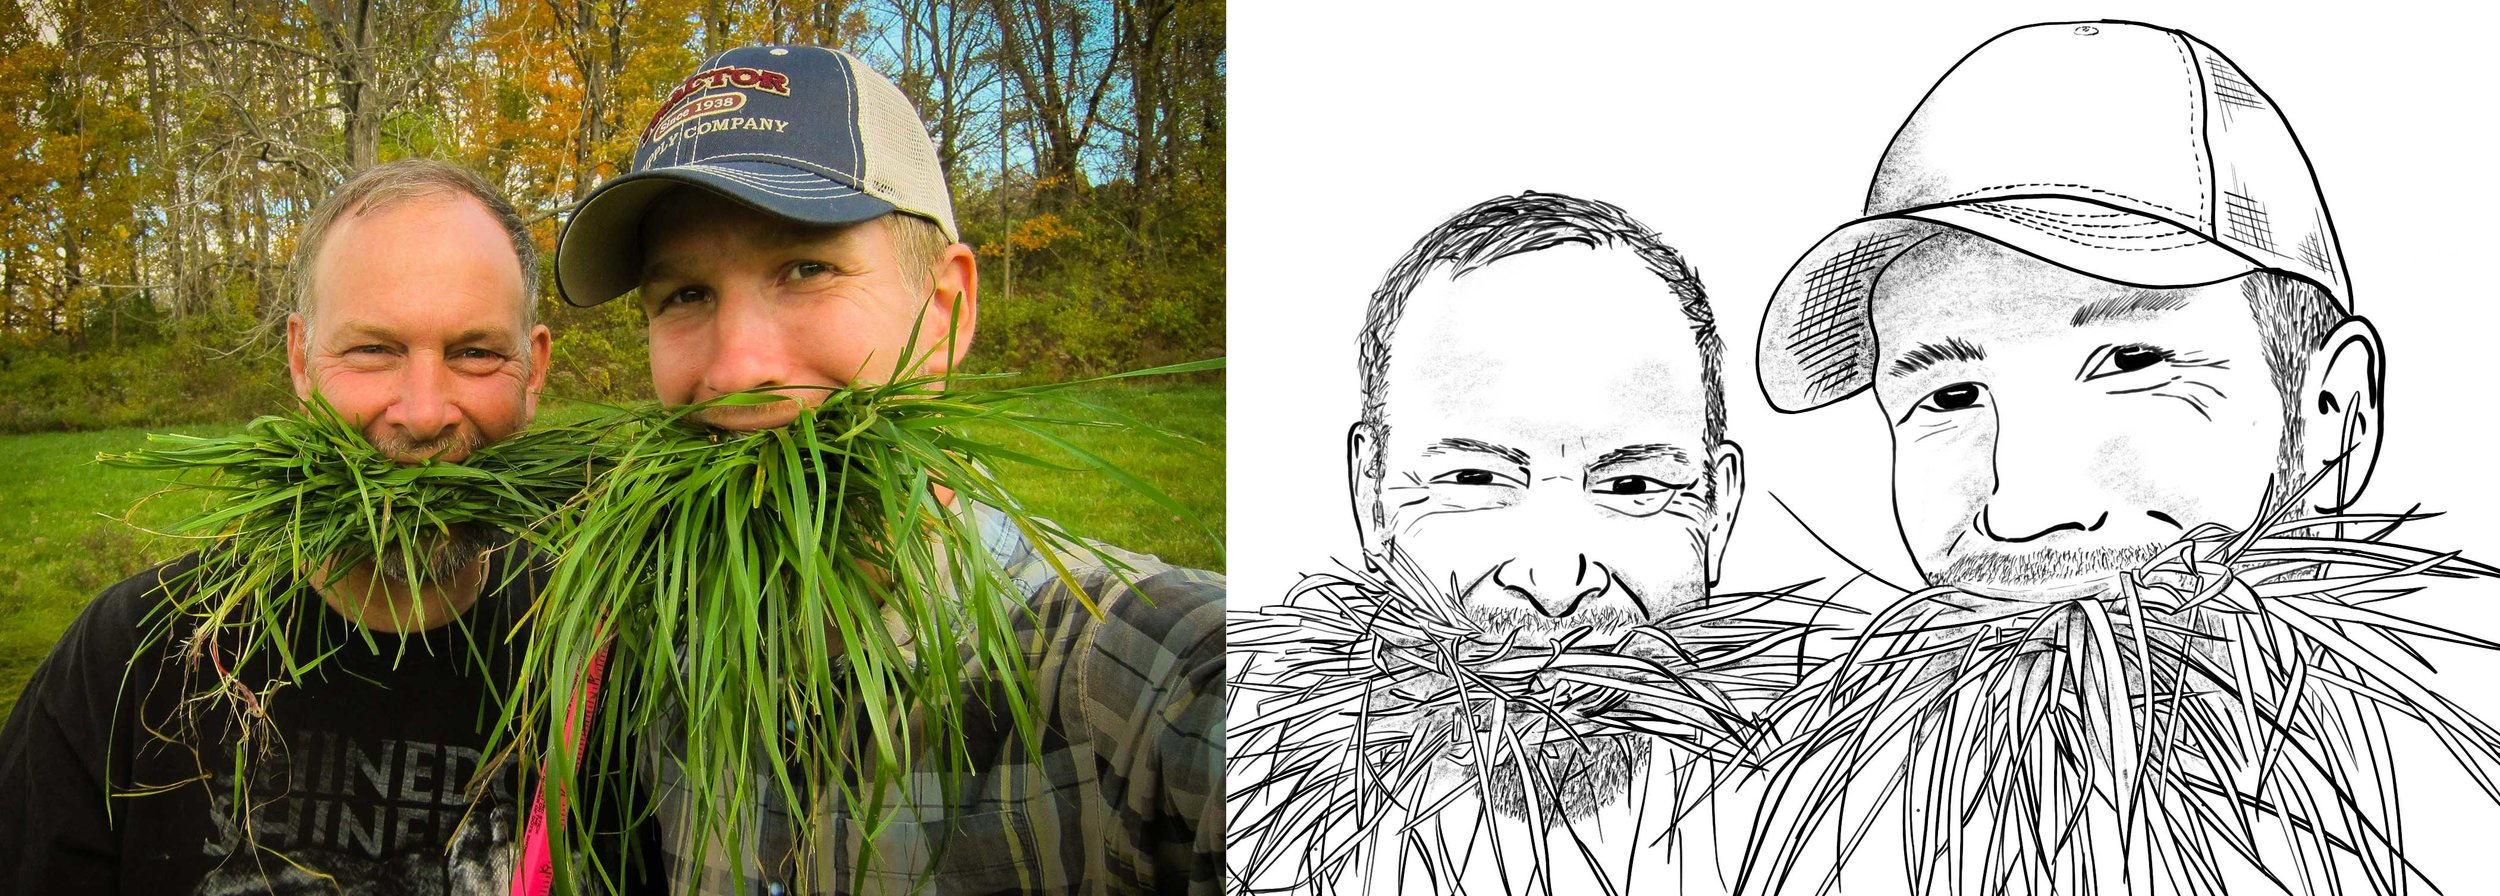 grass farmers on the growing farms podcast